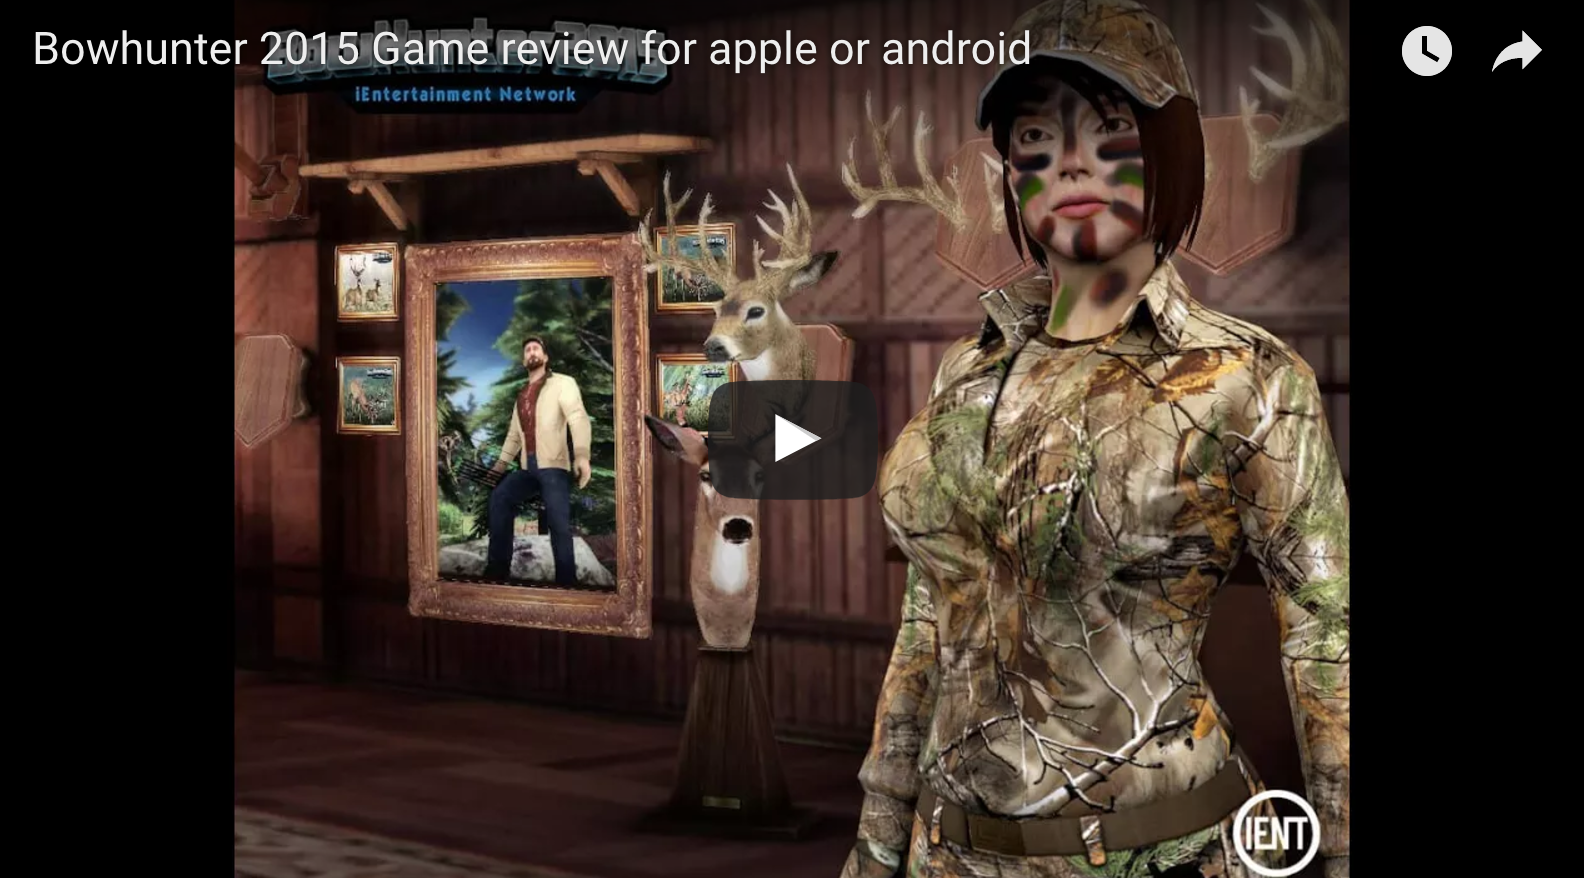 Mobile Bowhunting Gane by IENT